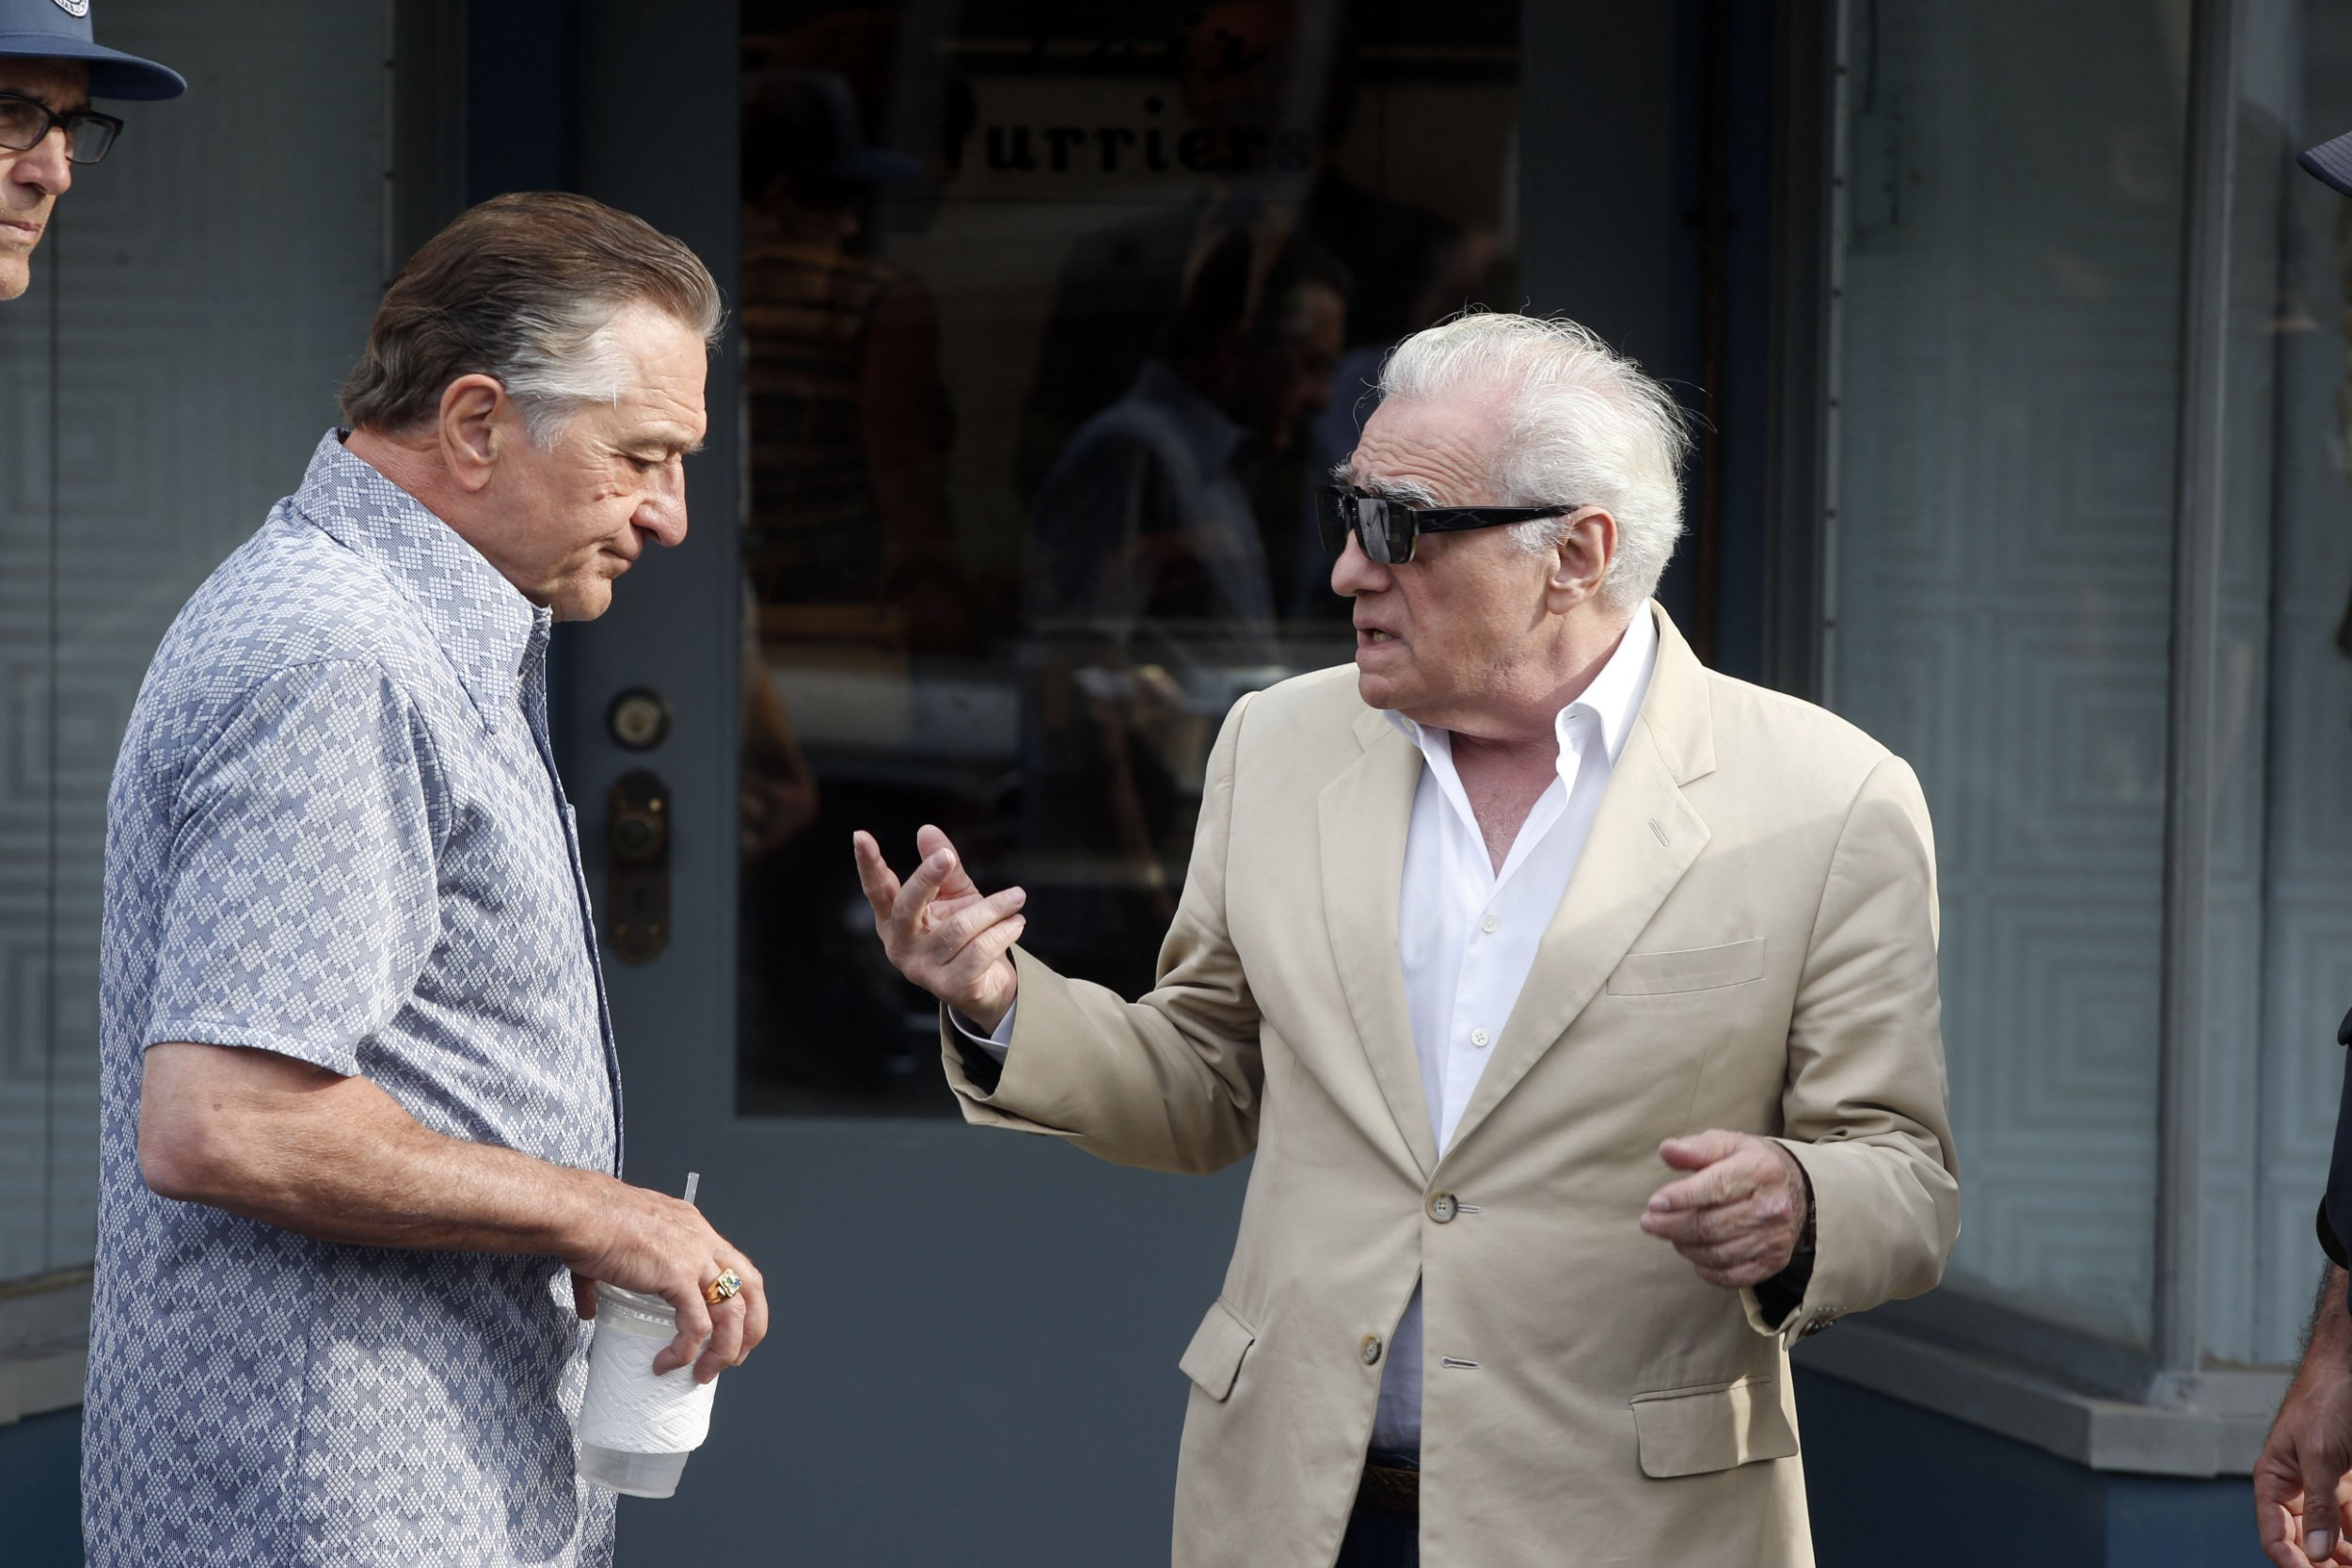 Robert De Niro, Joe Pesci and Martin Scorsese have Goodfellas reunion as they film The Irishman in New York